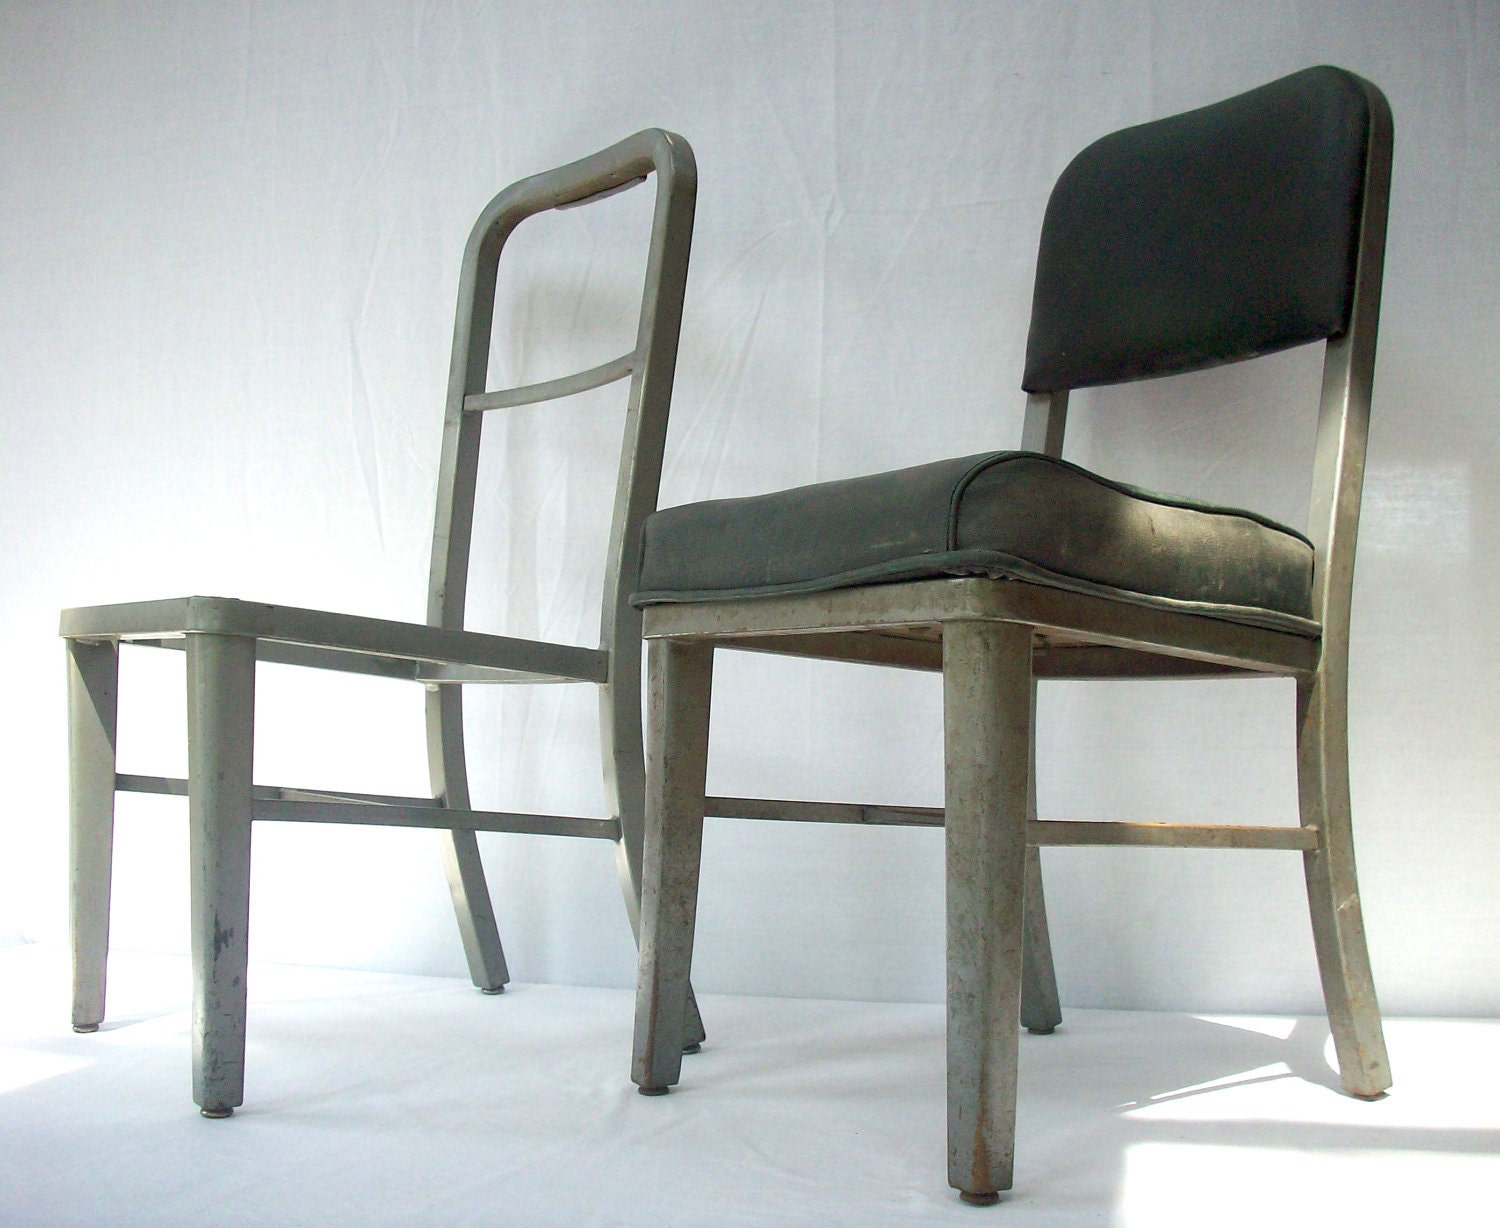 vintage steelcase metal frame office chairs 2 chairs